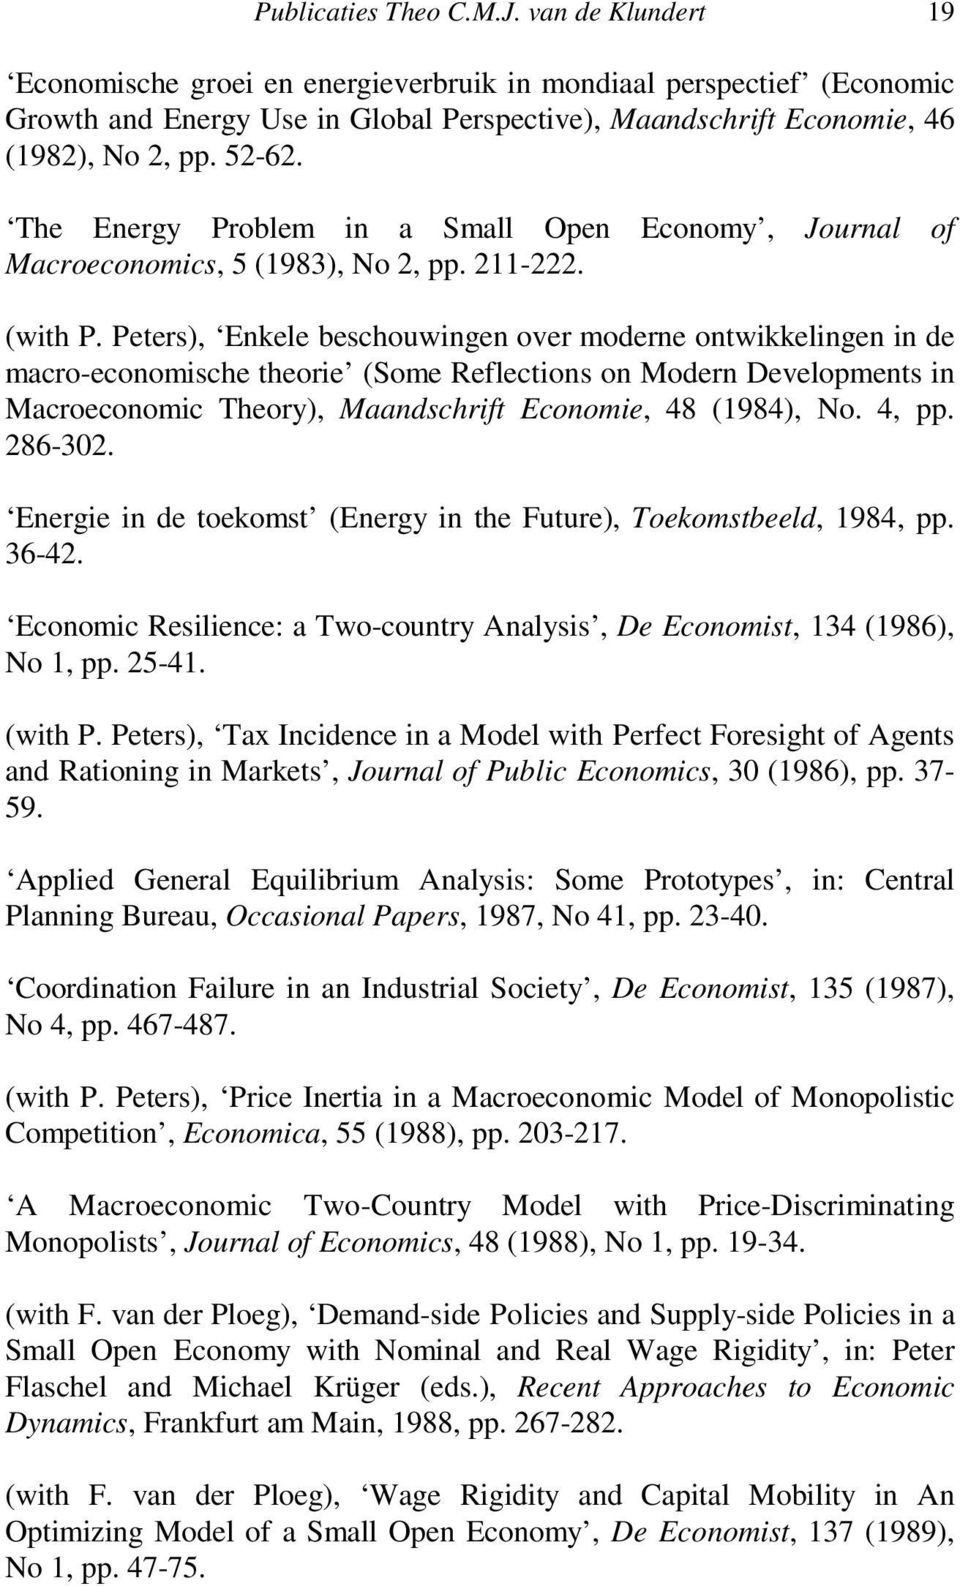 The Energy Problem in a Small Open Economy, Journal of Macroeconomics, 5 (1983), No 2, pp. 211-222. (with P.